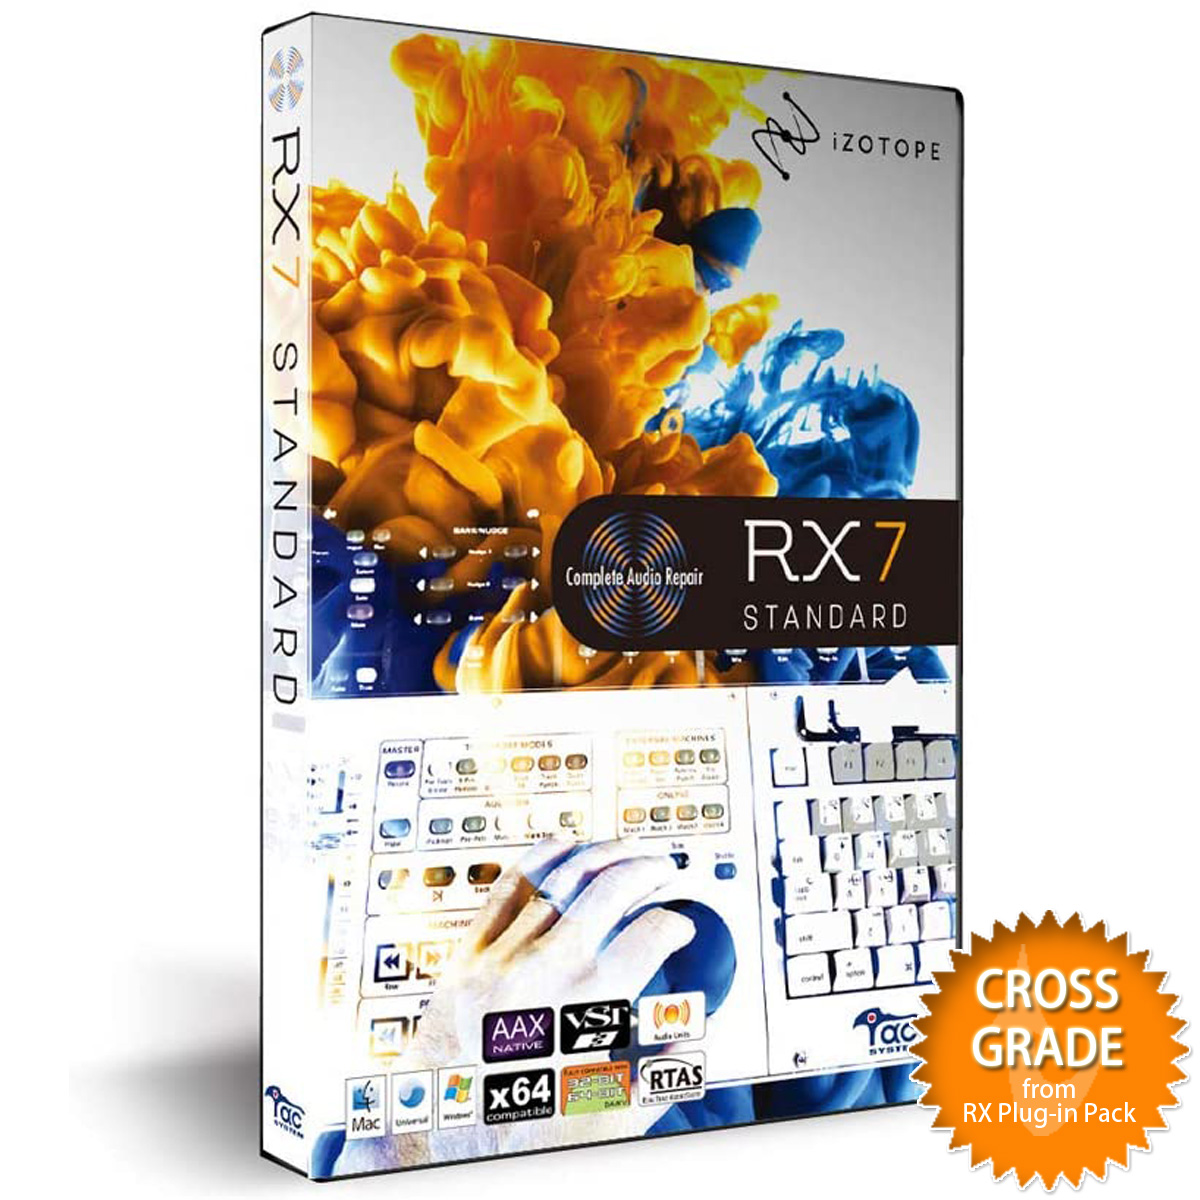 iZotope アイゾトープ / RX 7 Standard crossgrade from RX Plug-in Pack【お取り寄せ商品】